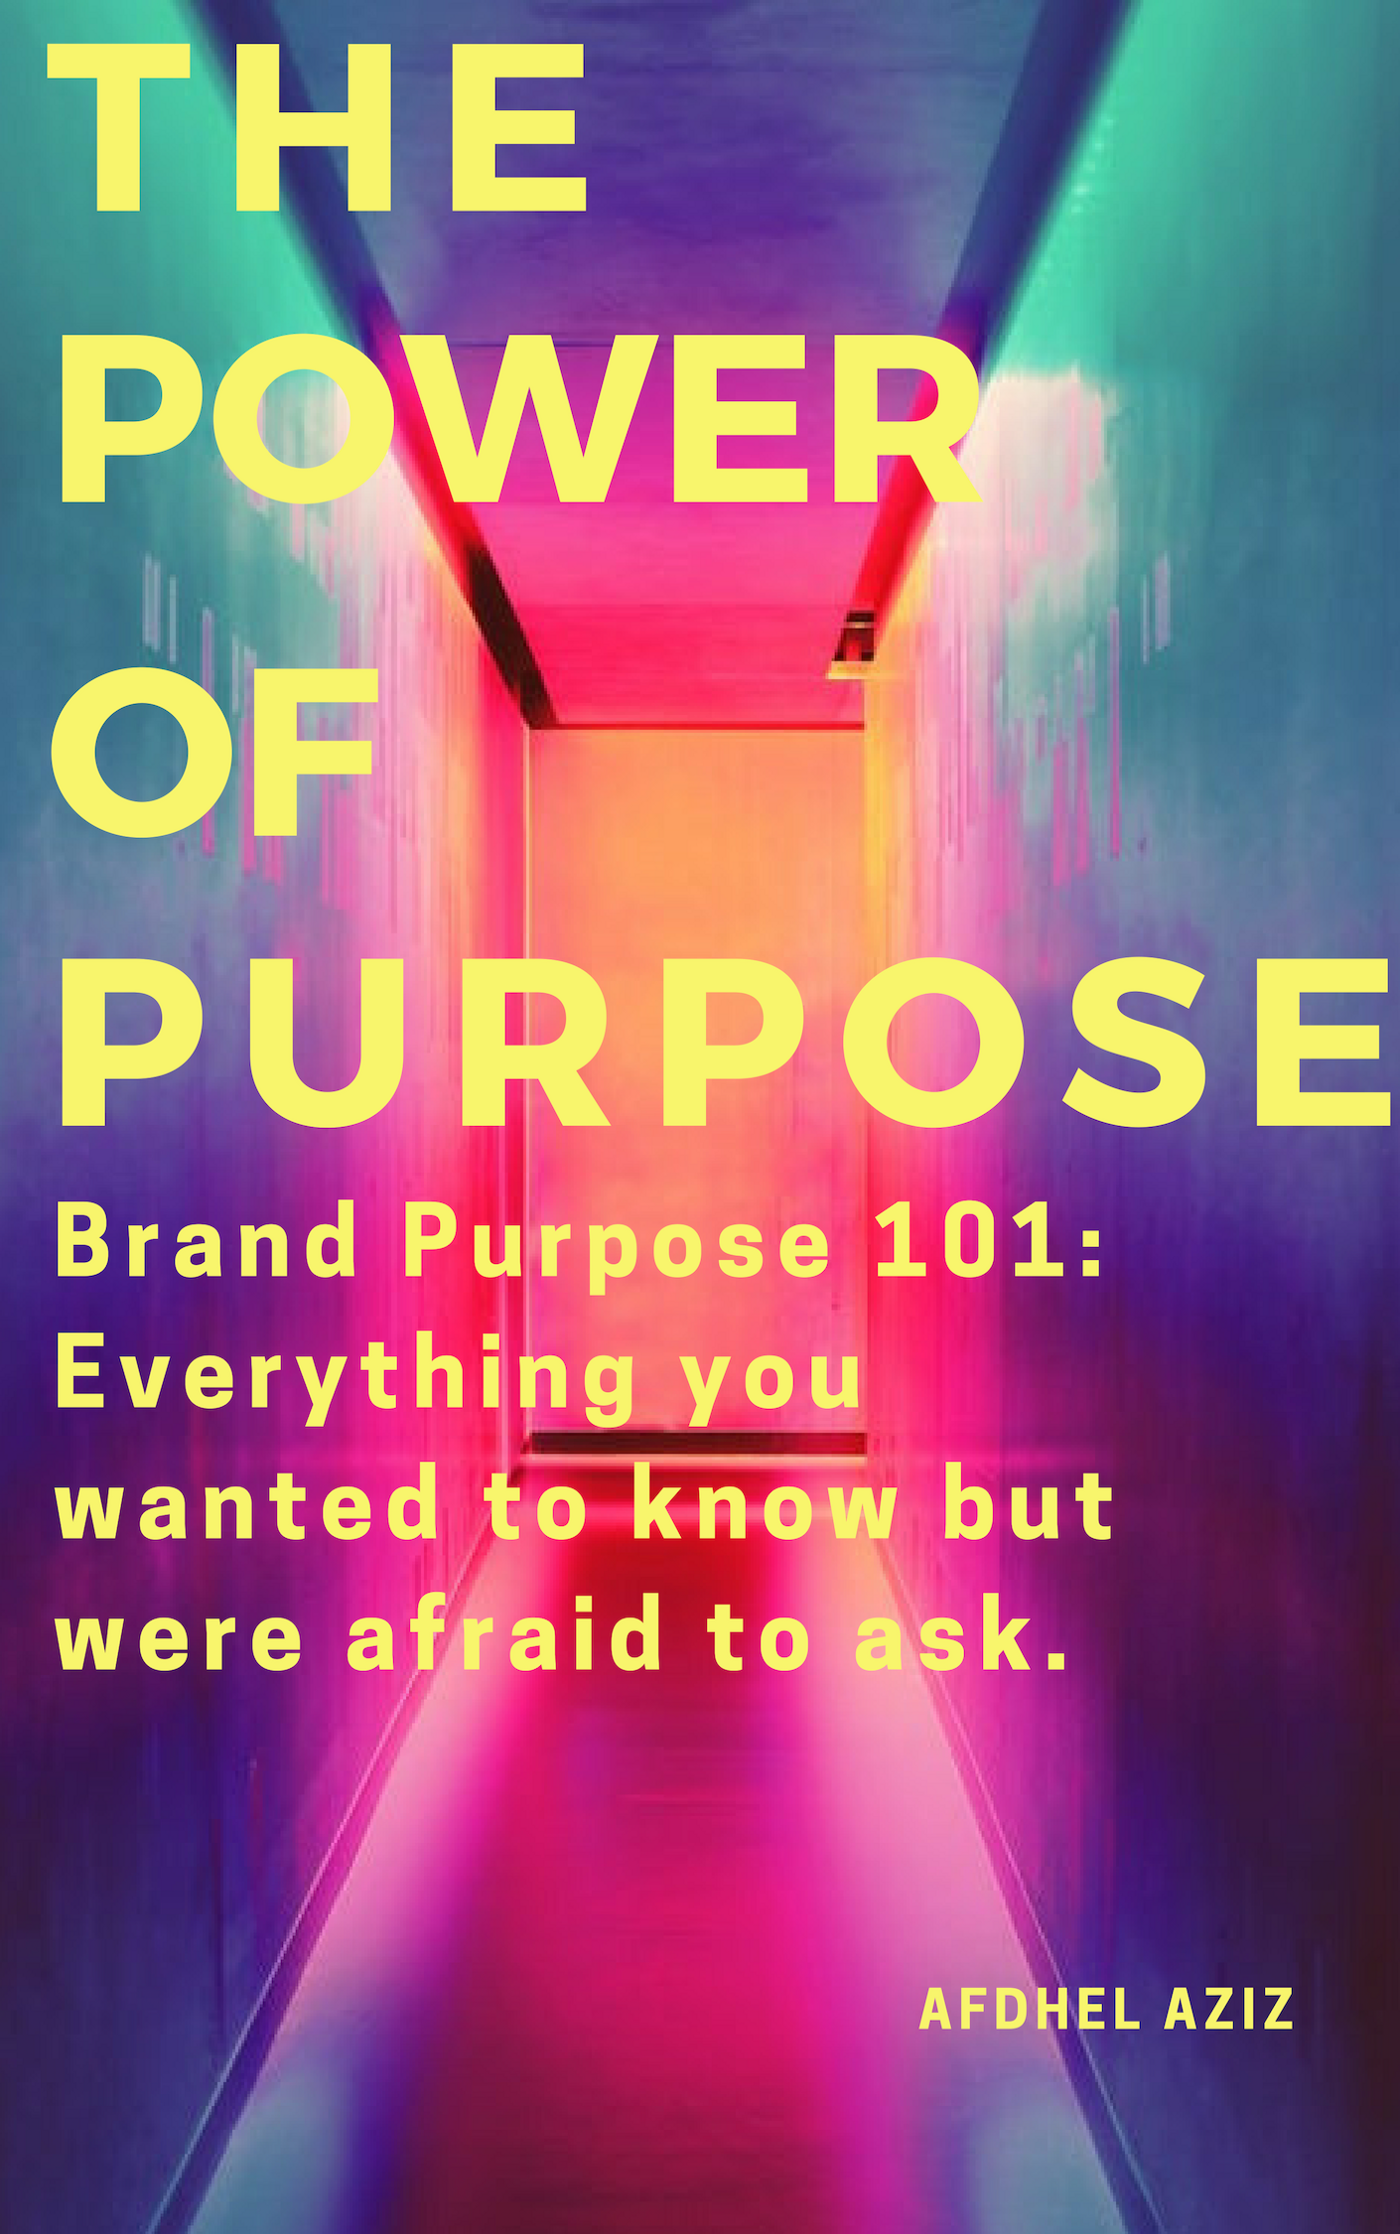 Brand Purpose 101: Everything you wanted to know but were afraid to ask